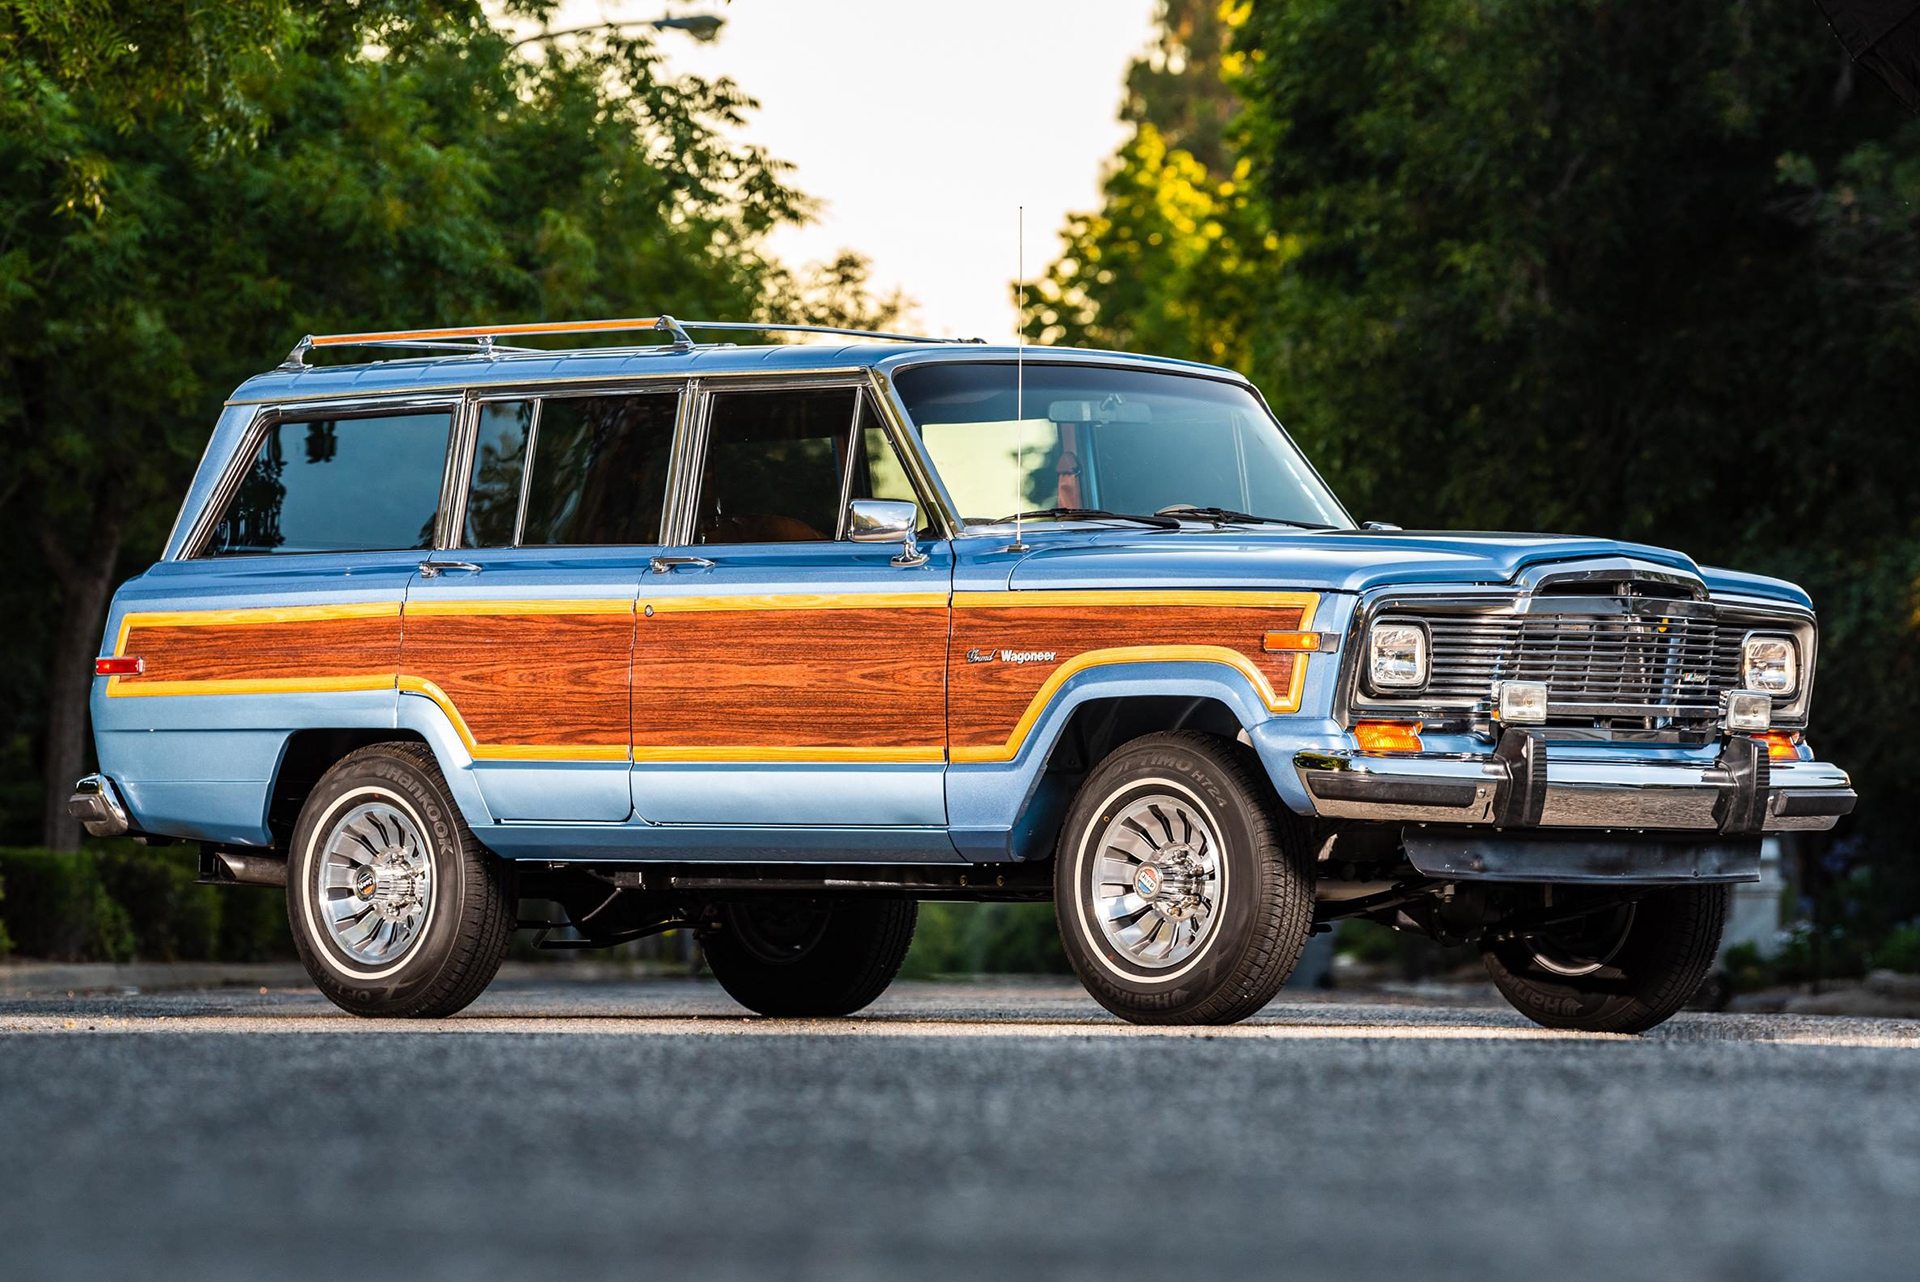 Jeep Grand Wagoneer For Sale >> LS-swapped 1984 Jeep Grand Wagoneer restoration is up for auction | Autoblog